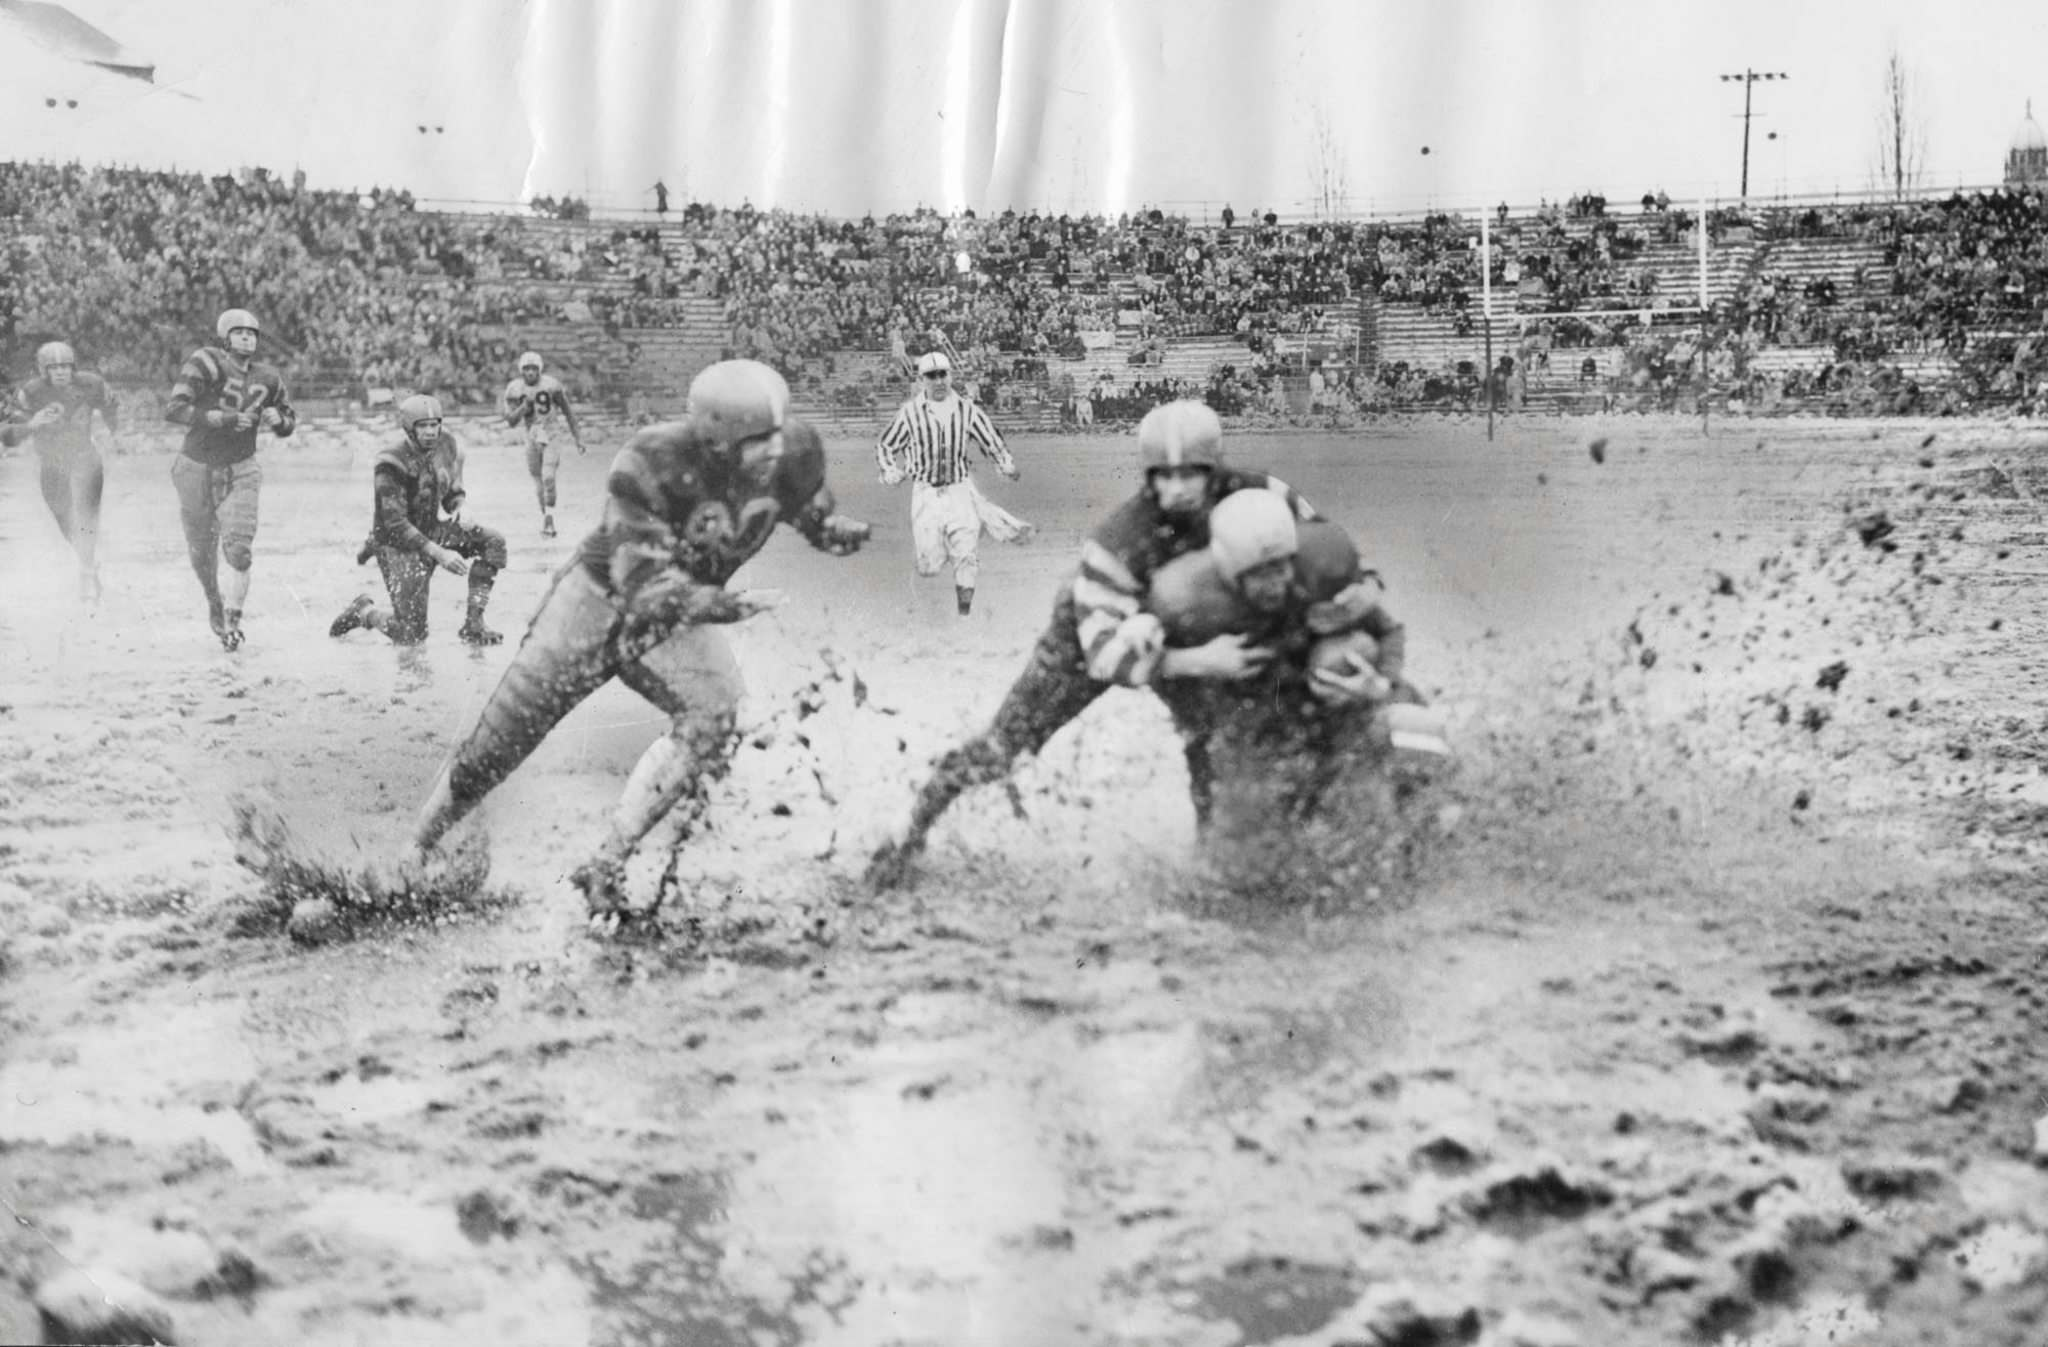 CP PHOTO/Toronto Star</p><p>Action from the 1950 Grey Cup game in Toronto, also known as the &#34;Mud Bowl.&#34;</p>